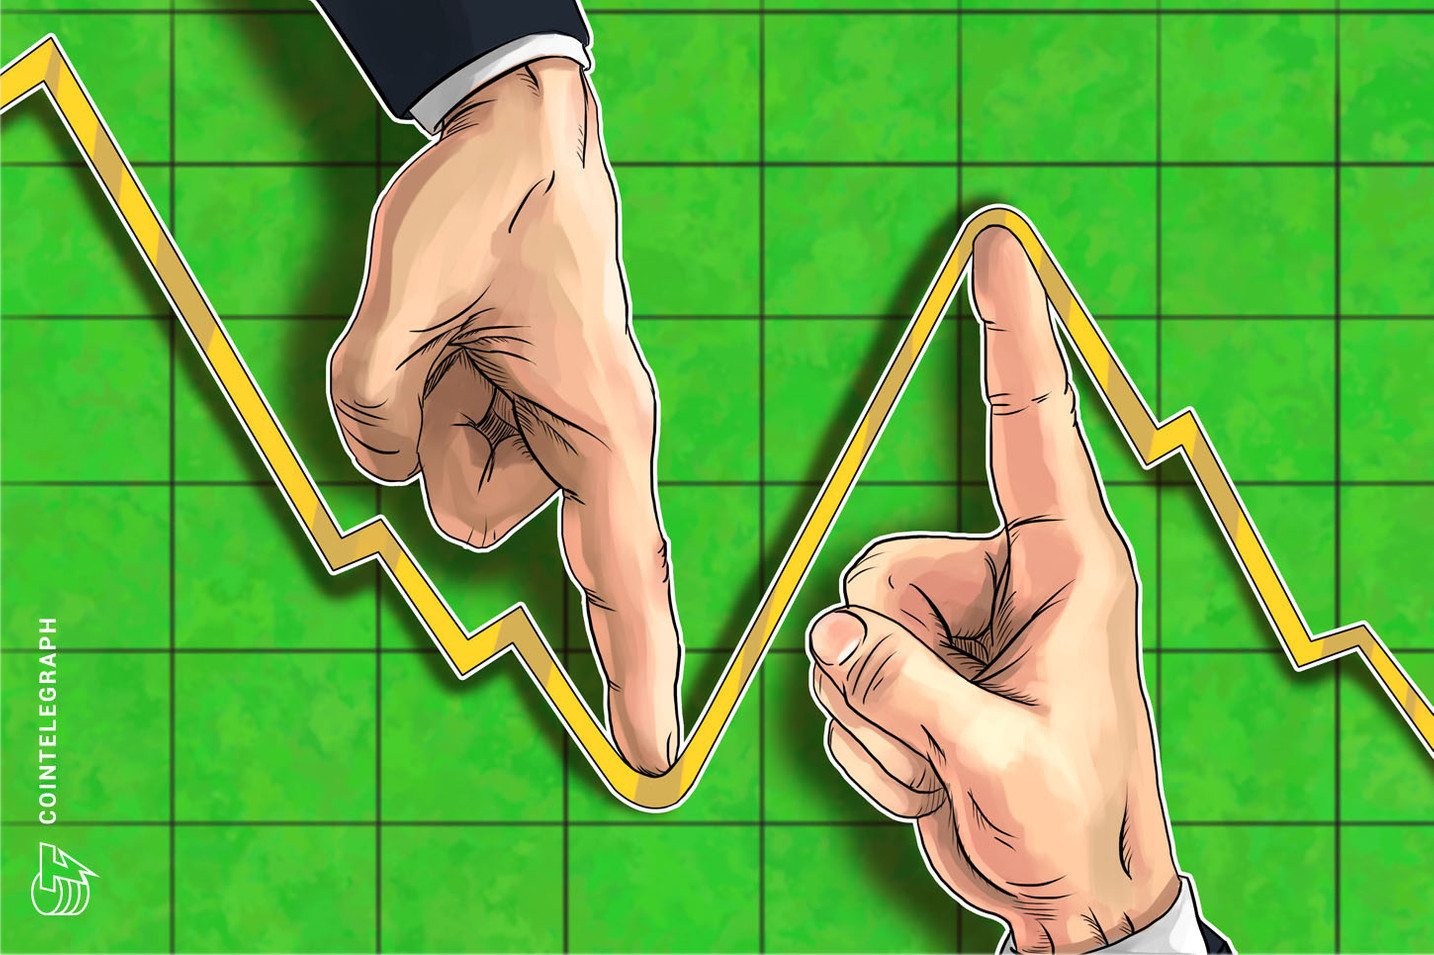 Crypto Markets See Mixed Signals But Remain Stable, Bitcoin Pushes $6,700